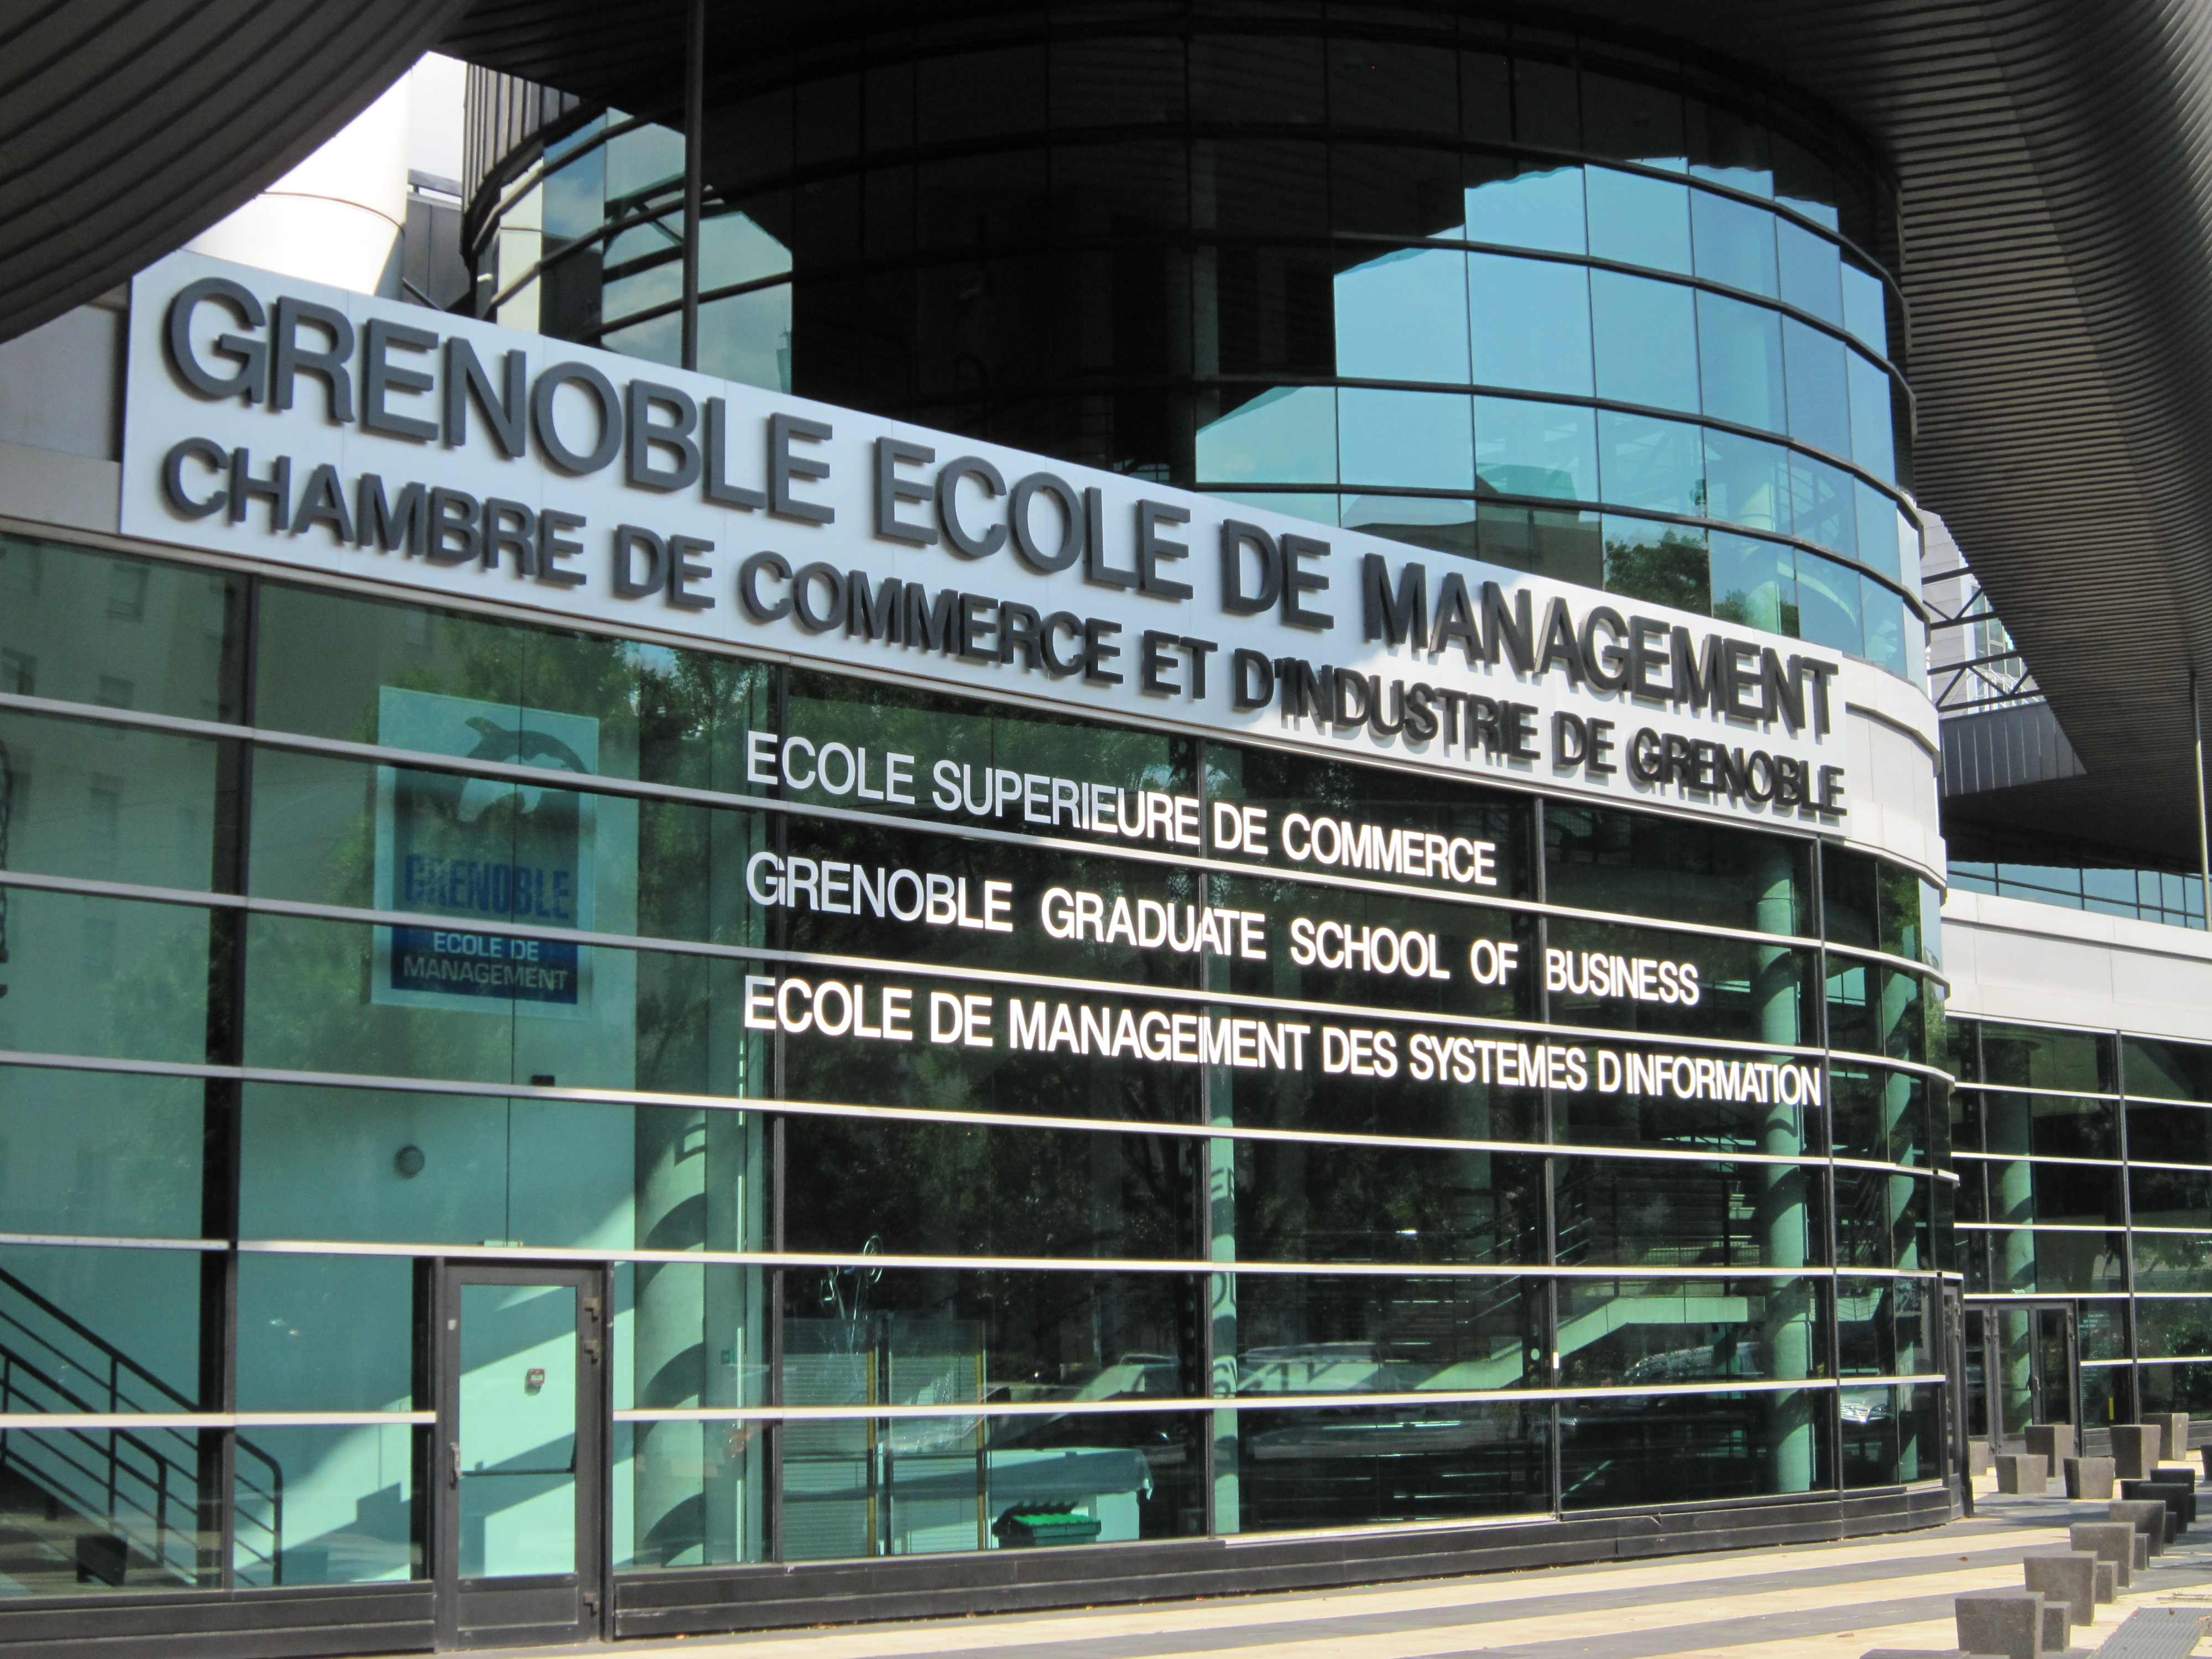 Gem the grenoble cole de management a year in grenoble - Cours de cuisine a grenoble ...